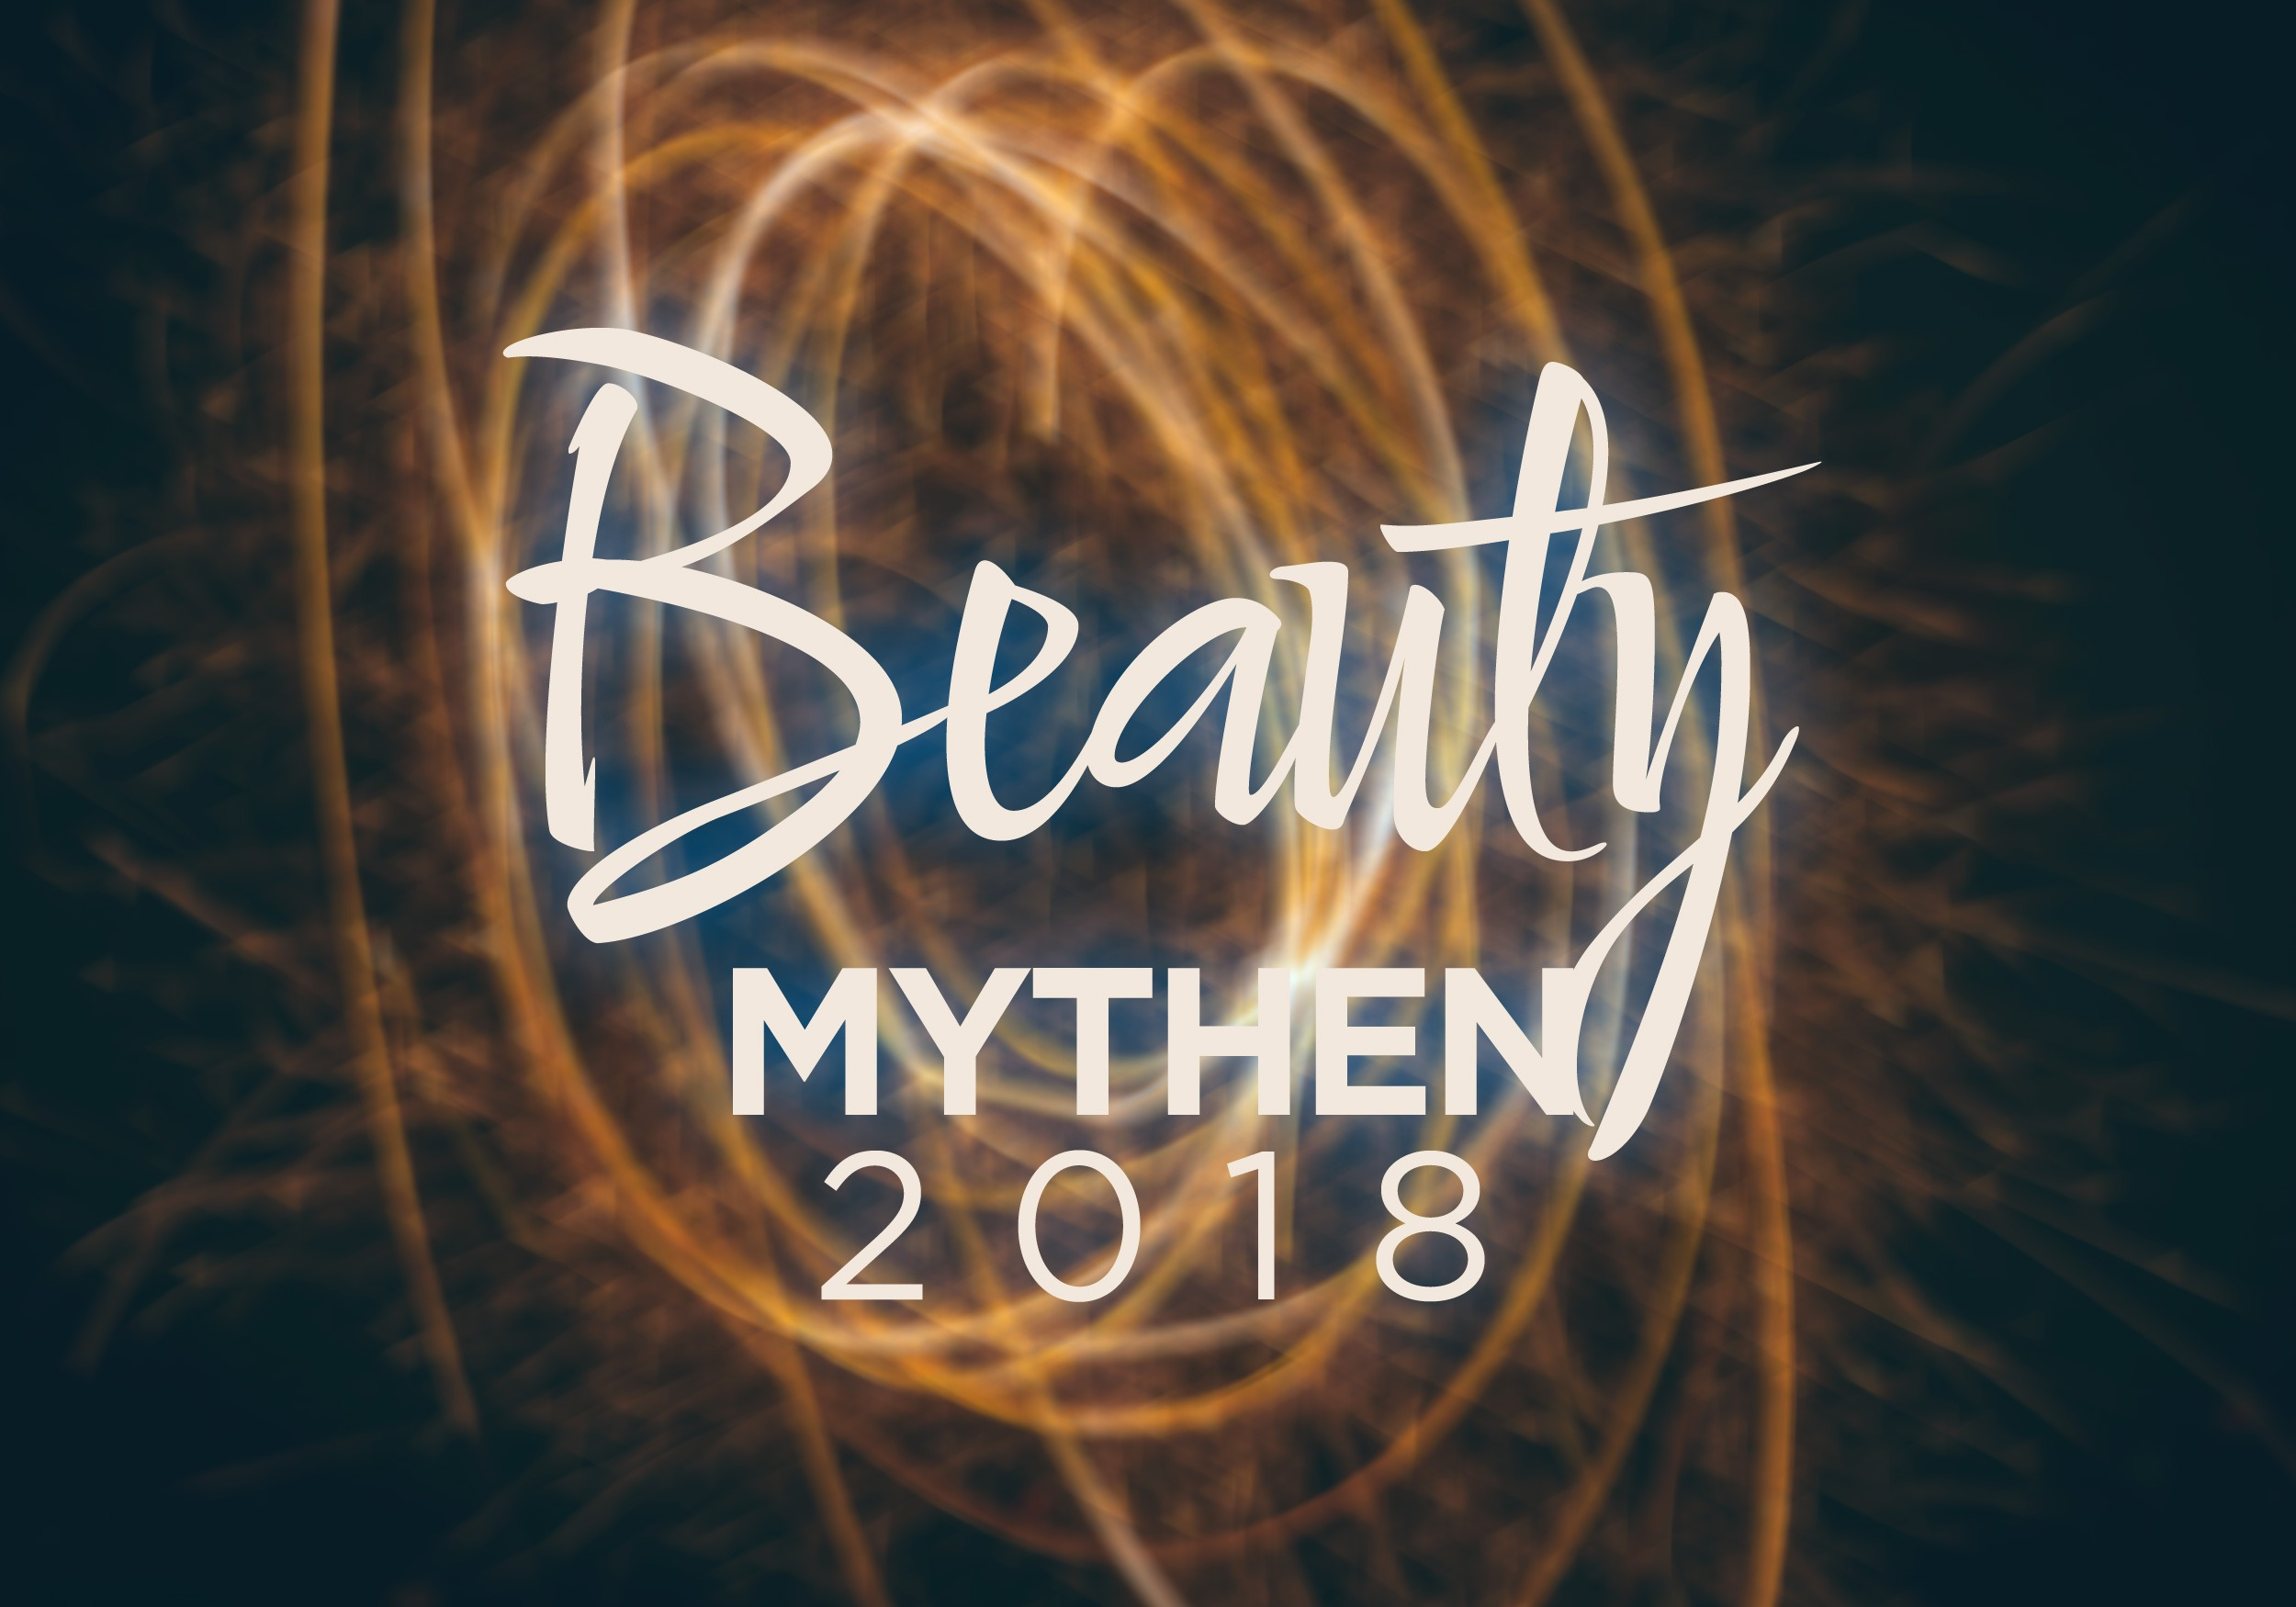 BEAUTY-Mythen 2018